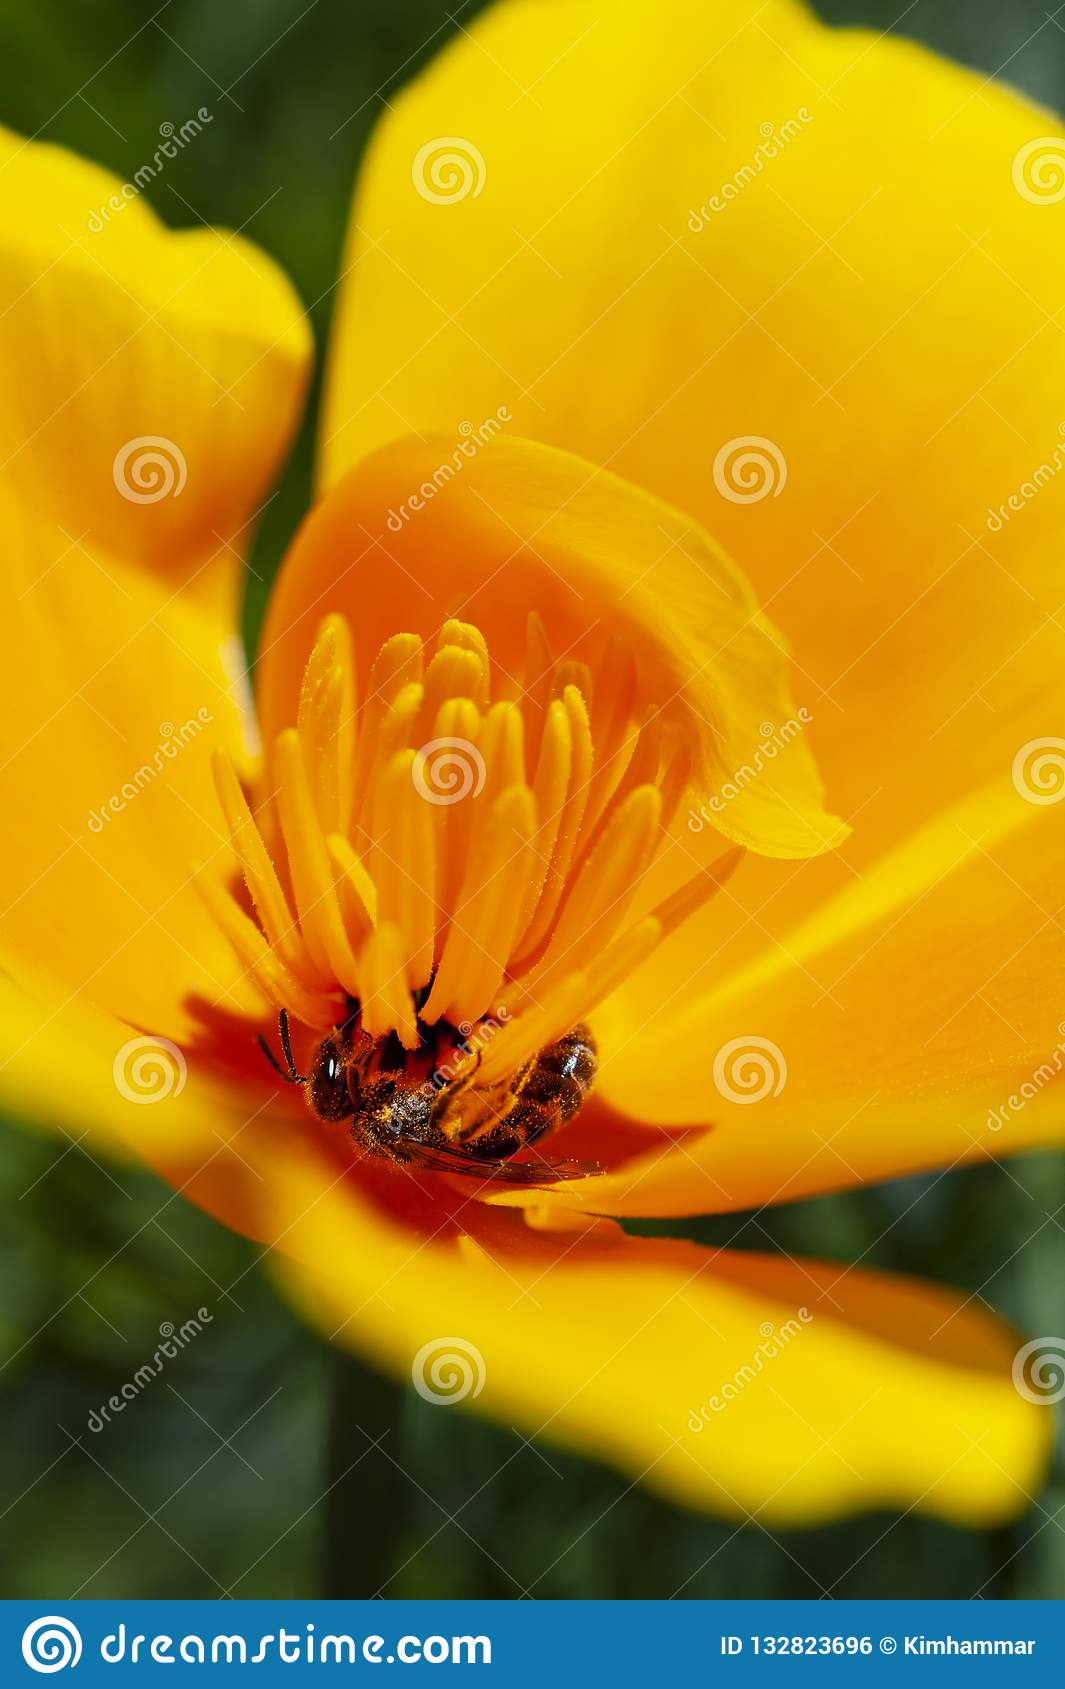 The California state flower, the California poppy, opens its petals daily for the sun and pollination.